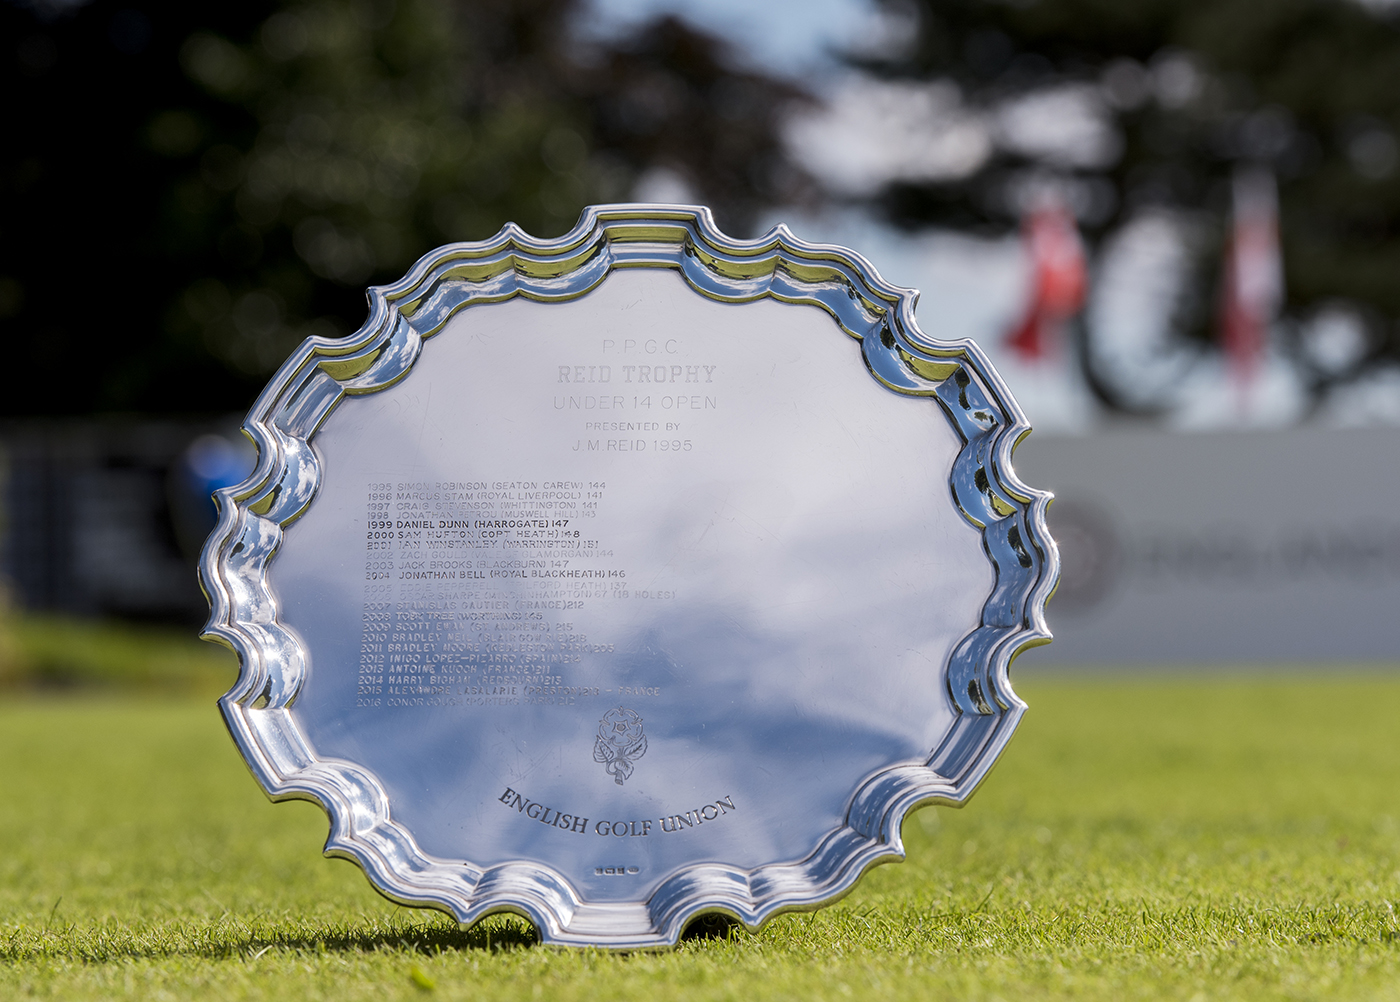 English U14 Boys' Open Amateur Stroke Play for the Reid Trophy